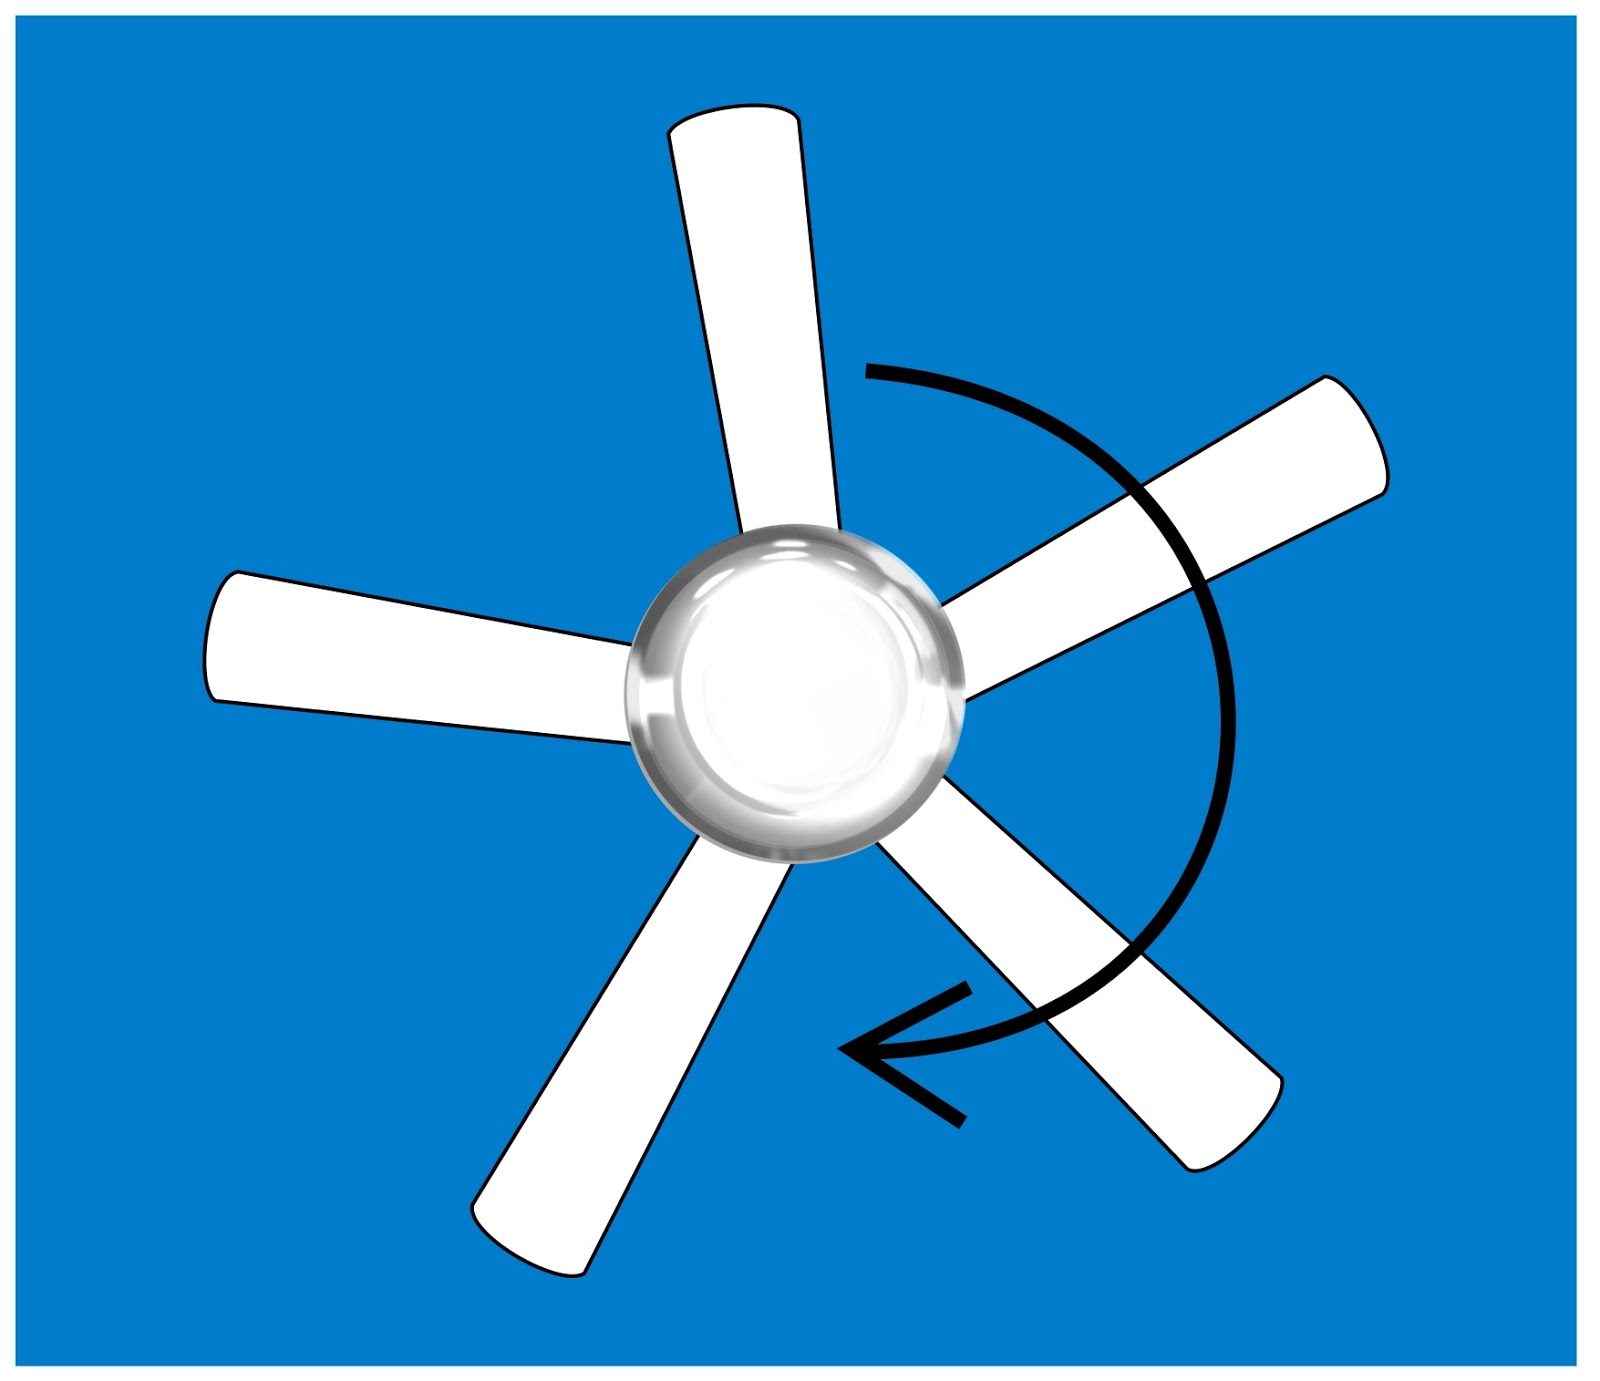 Ceiling fan direction summer and winter mozeypictures Image collections